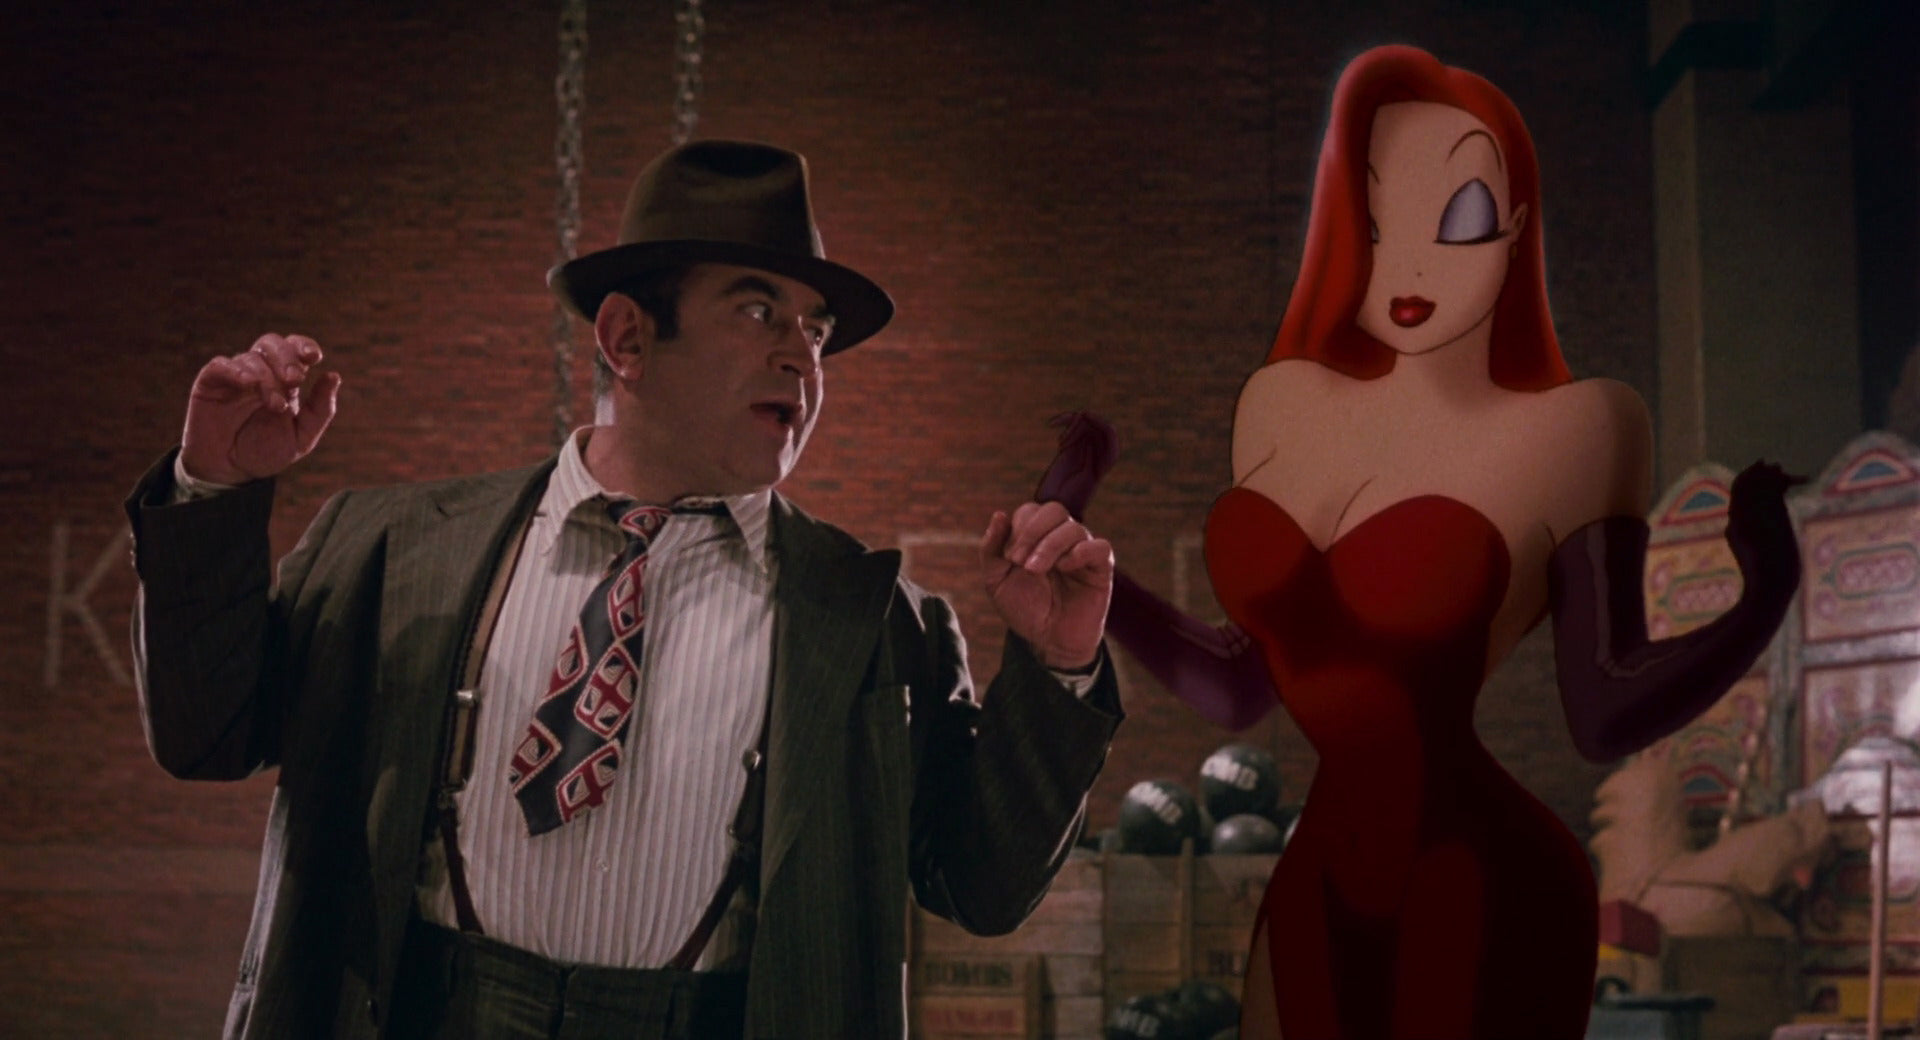 Revisiting Who Framed Roger Rabbit